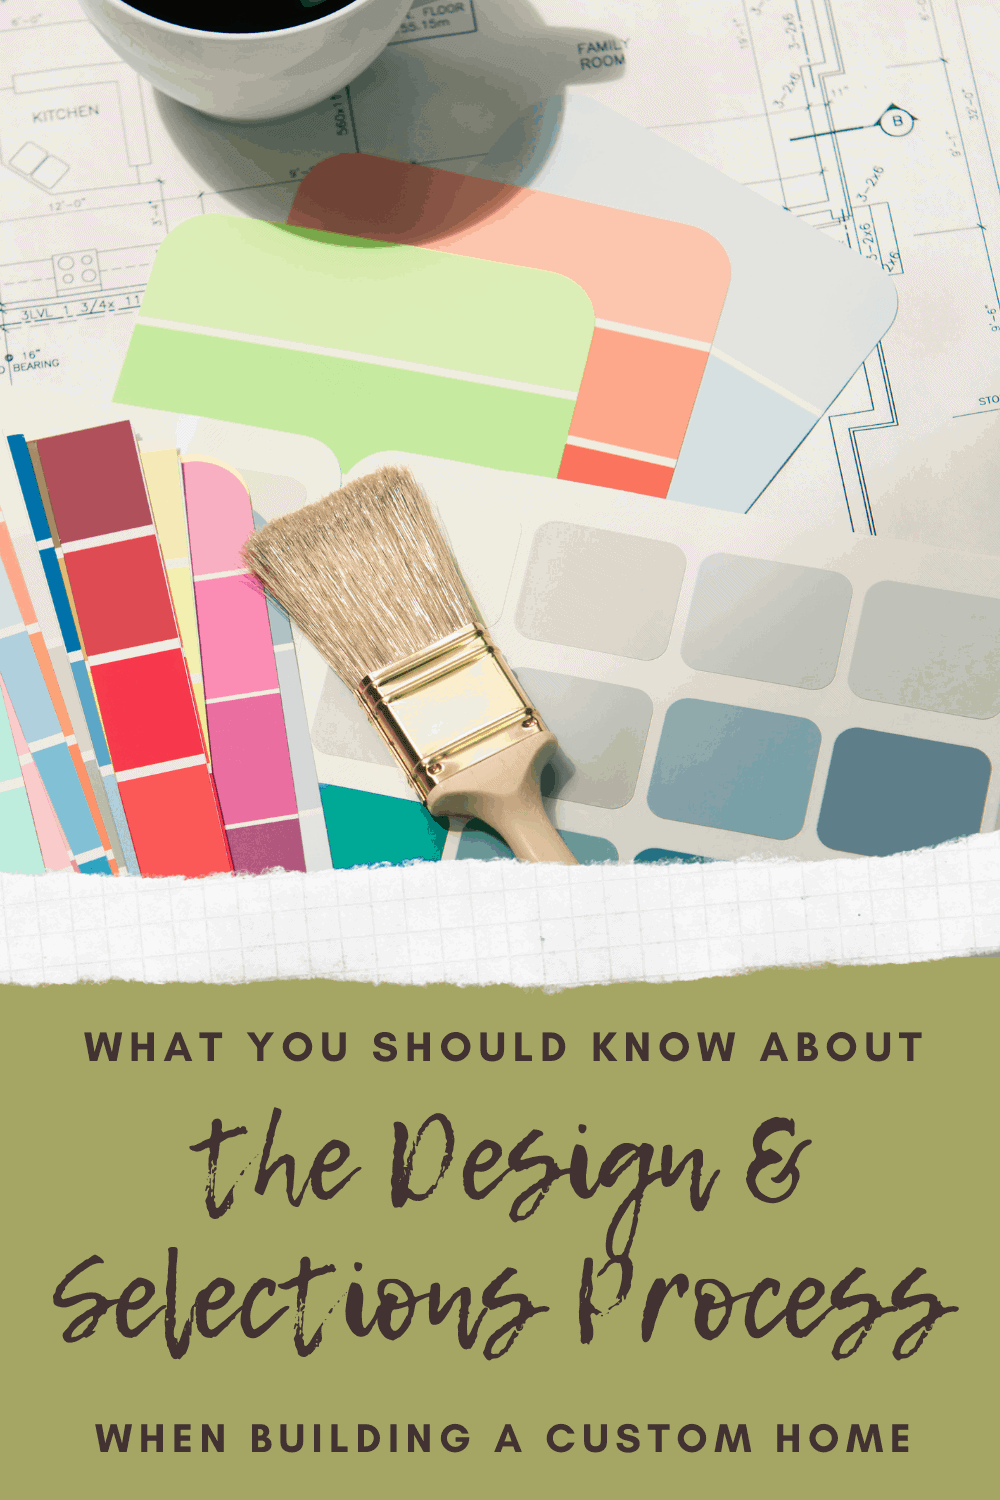 The selections and design process of a custom home build may be a little overwhelming, but we're here to give you our tips and tricks. #customhomebuild #customhome #buildinghomes #homebuild #home #newhome #house #newhouse #interiordesign #selectionsfornewhome #newhomedesign via @ediblesense